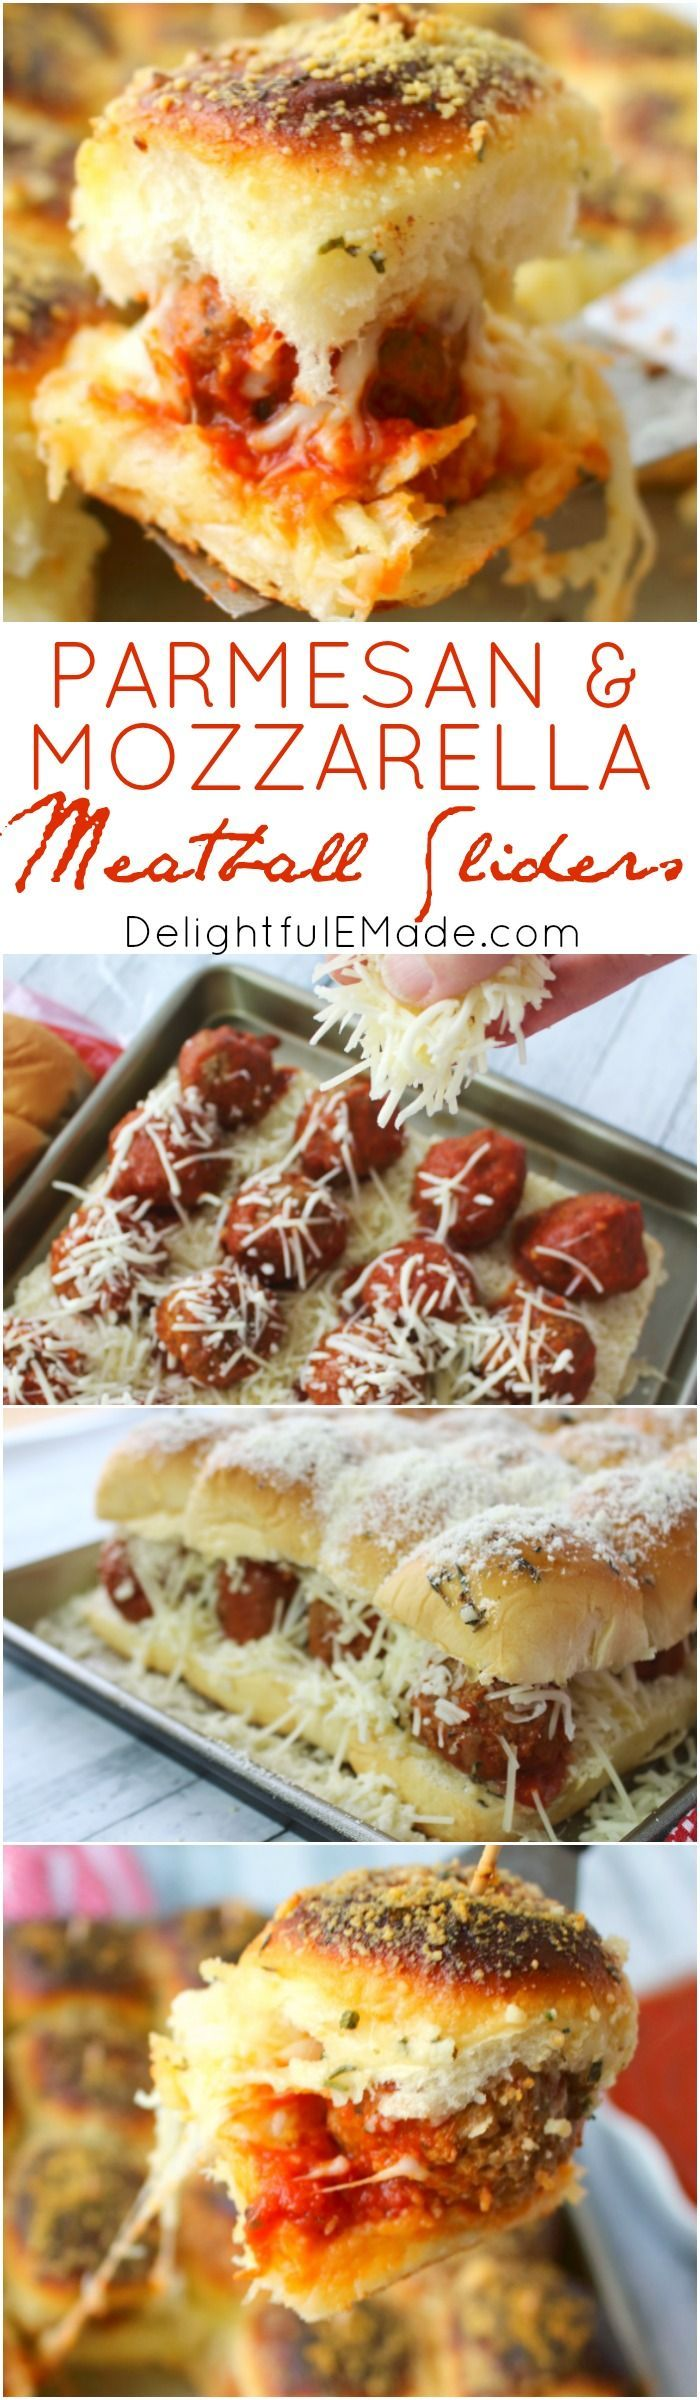 Parmesan Mozzarella Meatball Sliders | The Ultimate Party or Pot-Luck recipe!